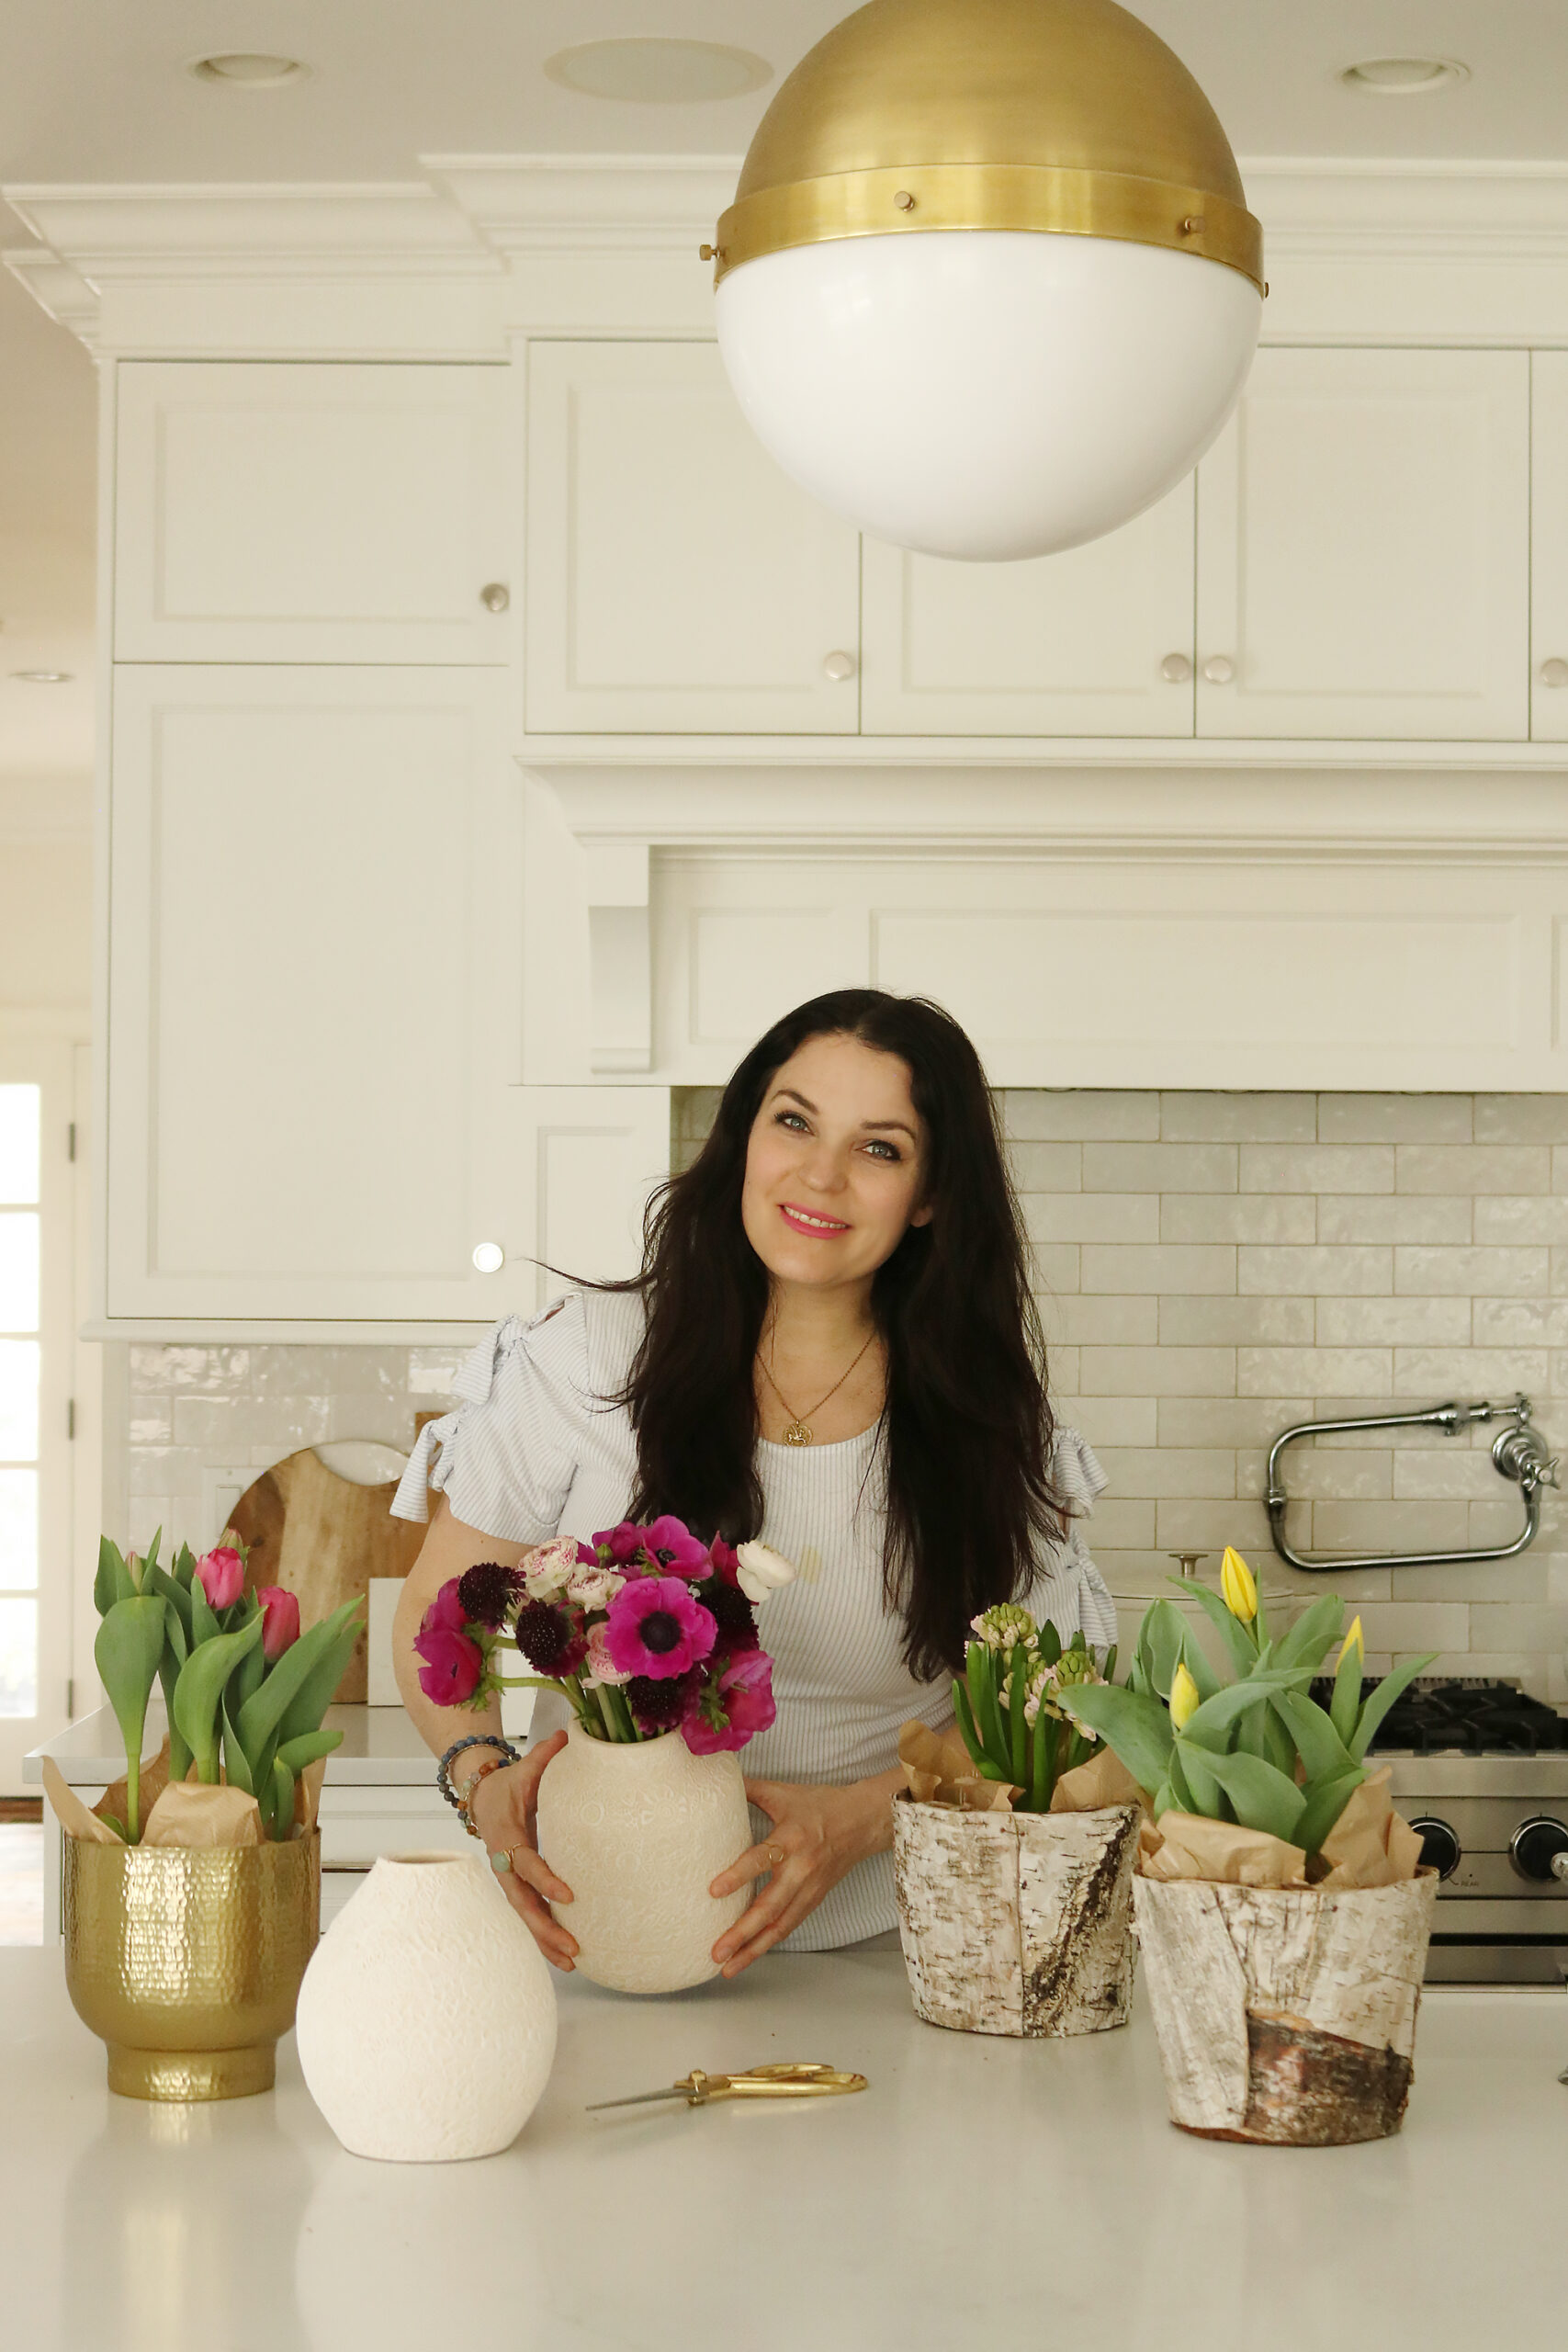 Indoor Styling with Spring Flowers with indoor pots the spring flowers, potted tulips, bring spring flowers indoors, spring bulbs flowers || Darling Darleen Top Lifestyle CT Bloggers #springflowers #pottedflowers